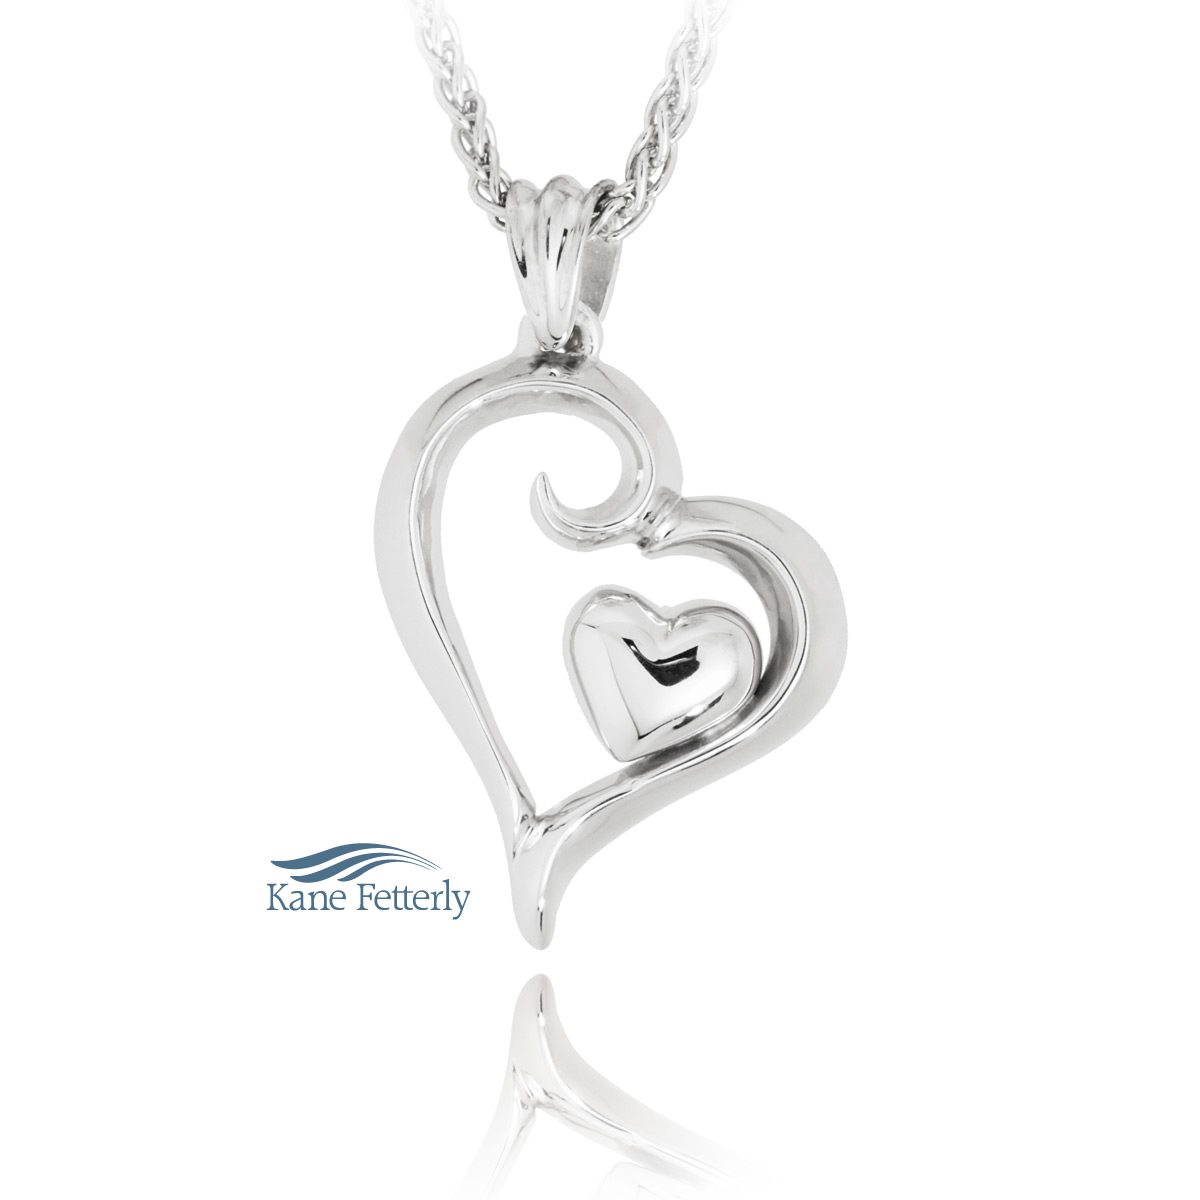 J0215 Heart pendant in sterling silver